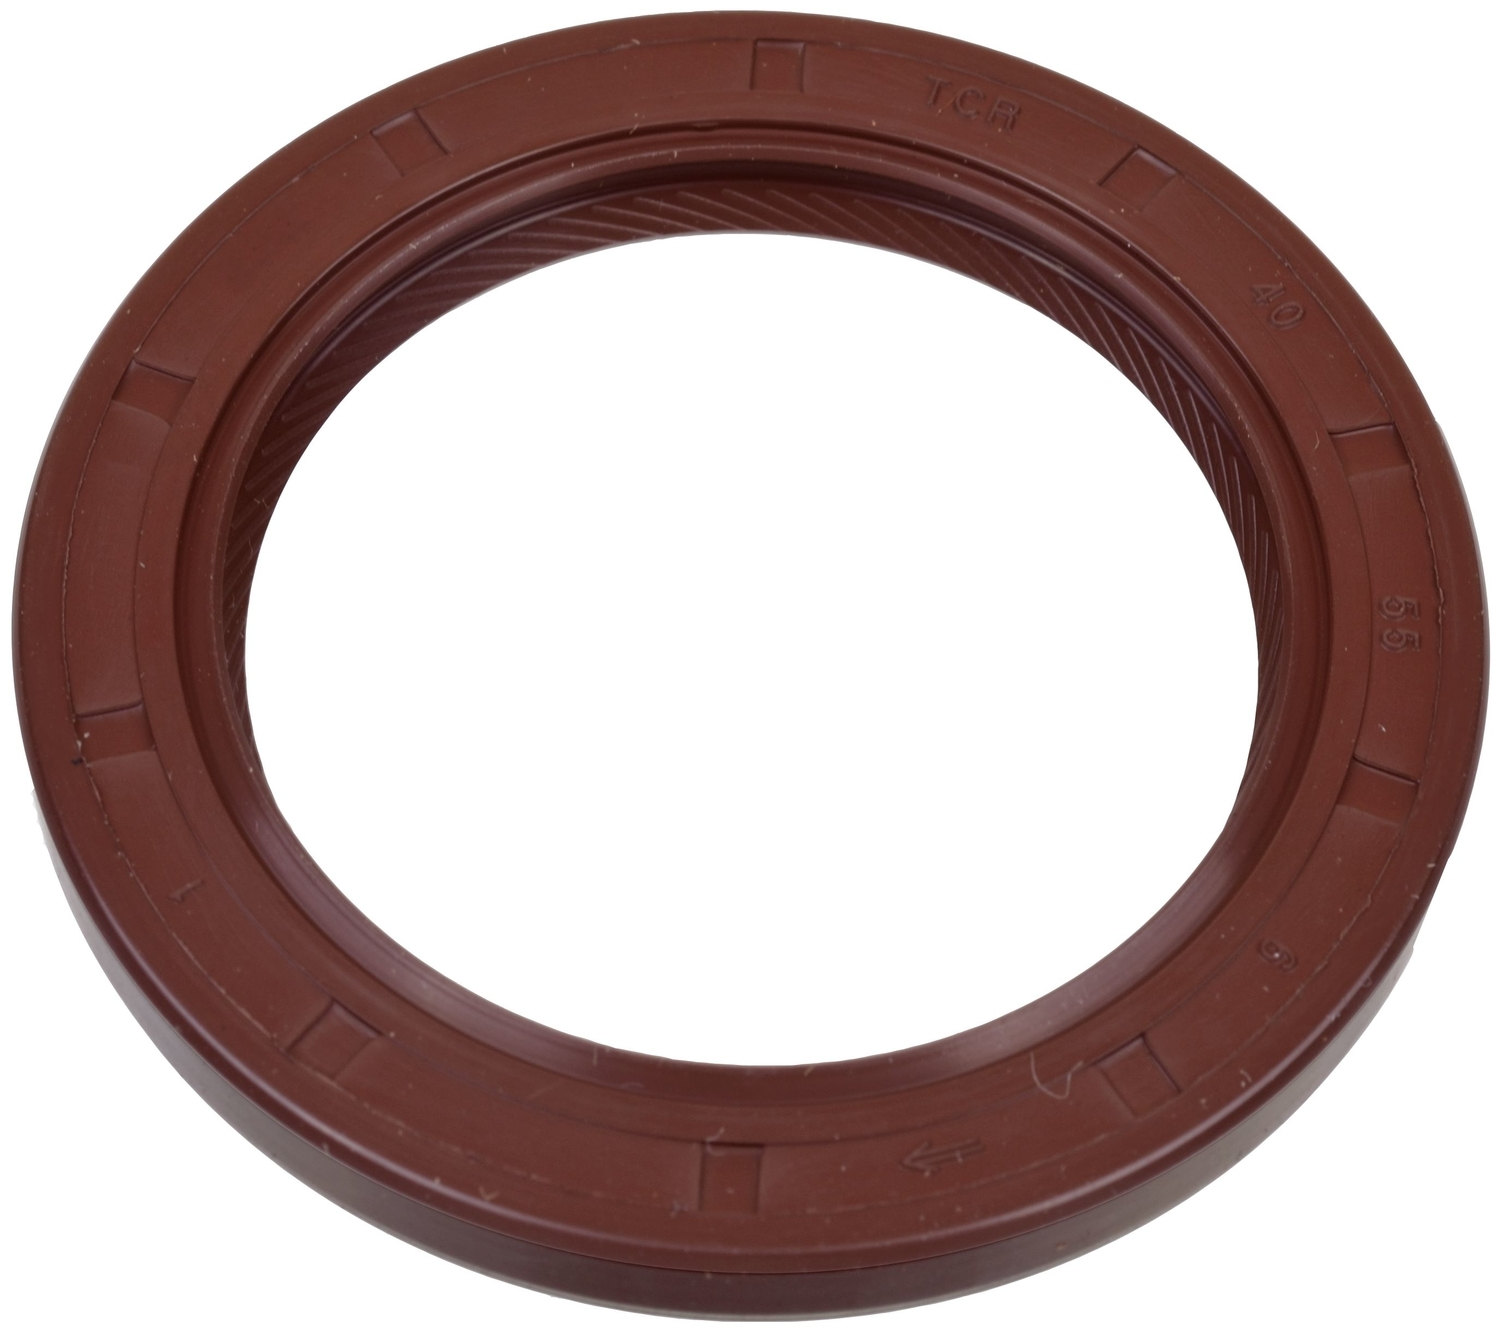 SKF (CHICAGO RAWHIDE) - Engine Timing Cover Seal - SKF 15818